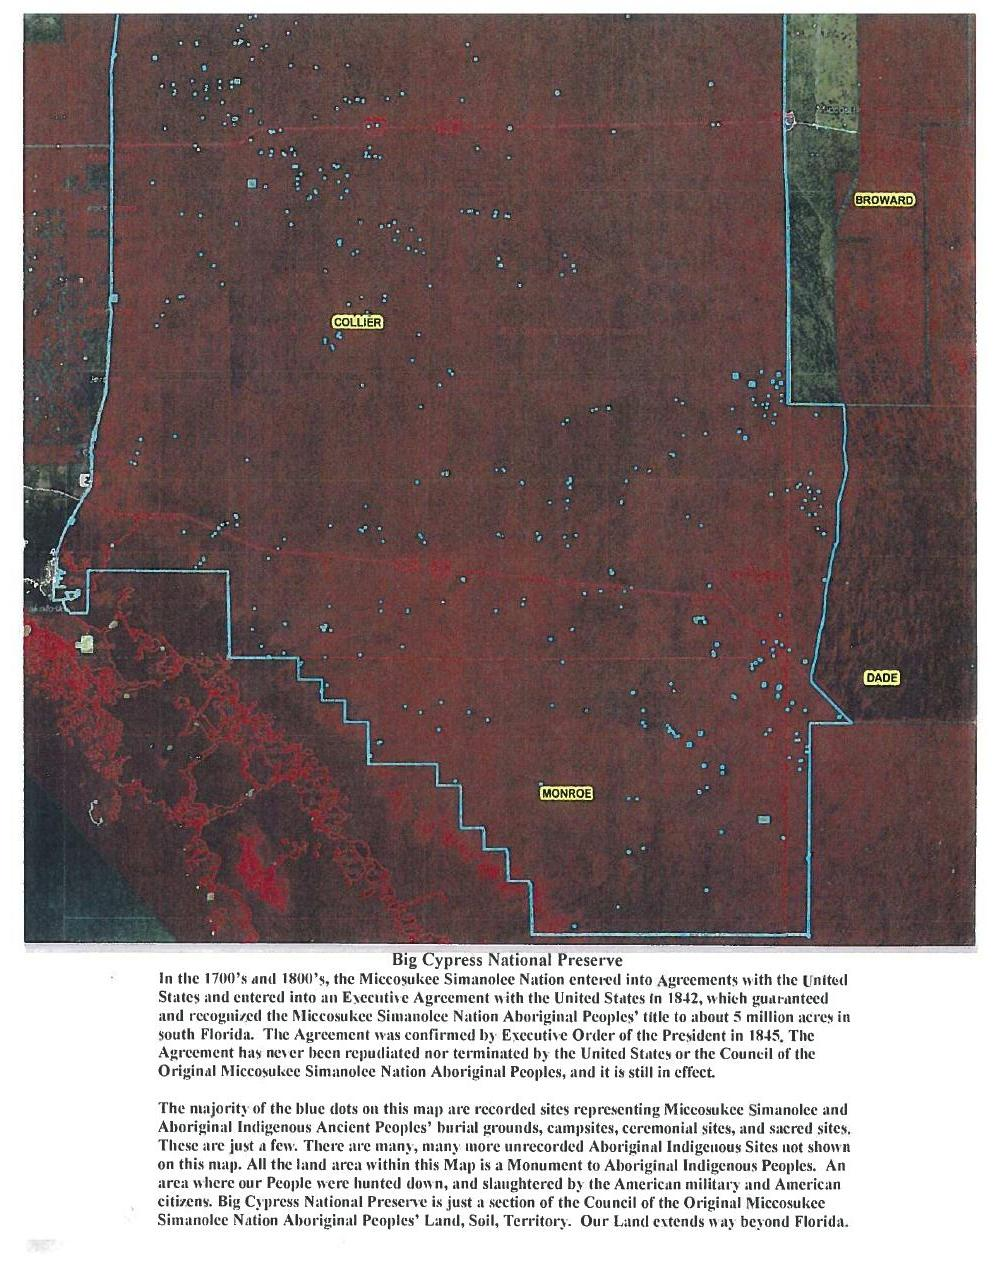 1000x1275 Big Cypress National Preserve, in Council of the Original Miccosukee Simanolee Nation, by John S. Quarterman, for SpectraBusters.org, 21 November 2013